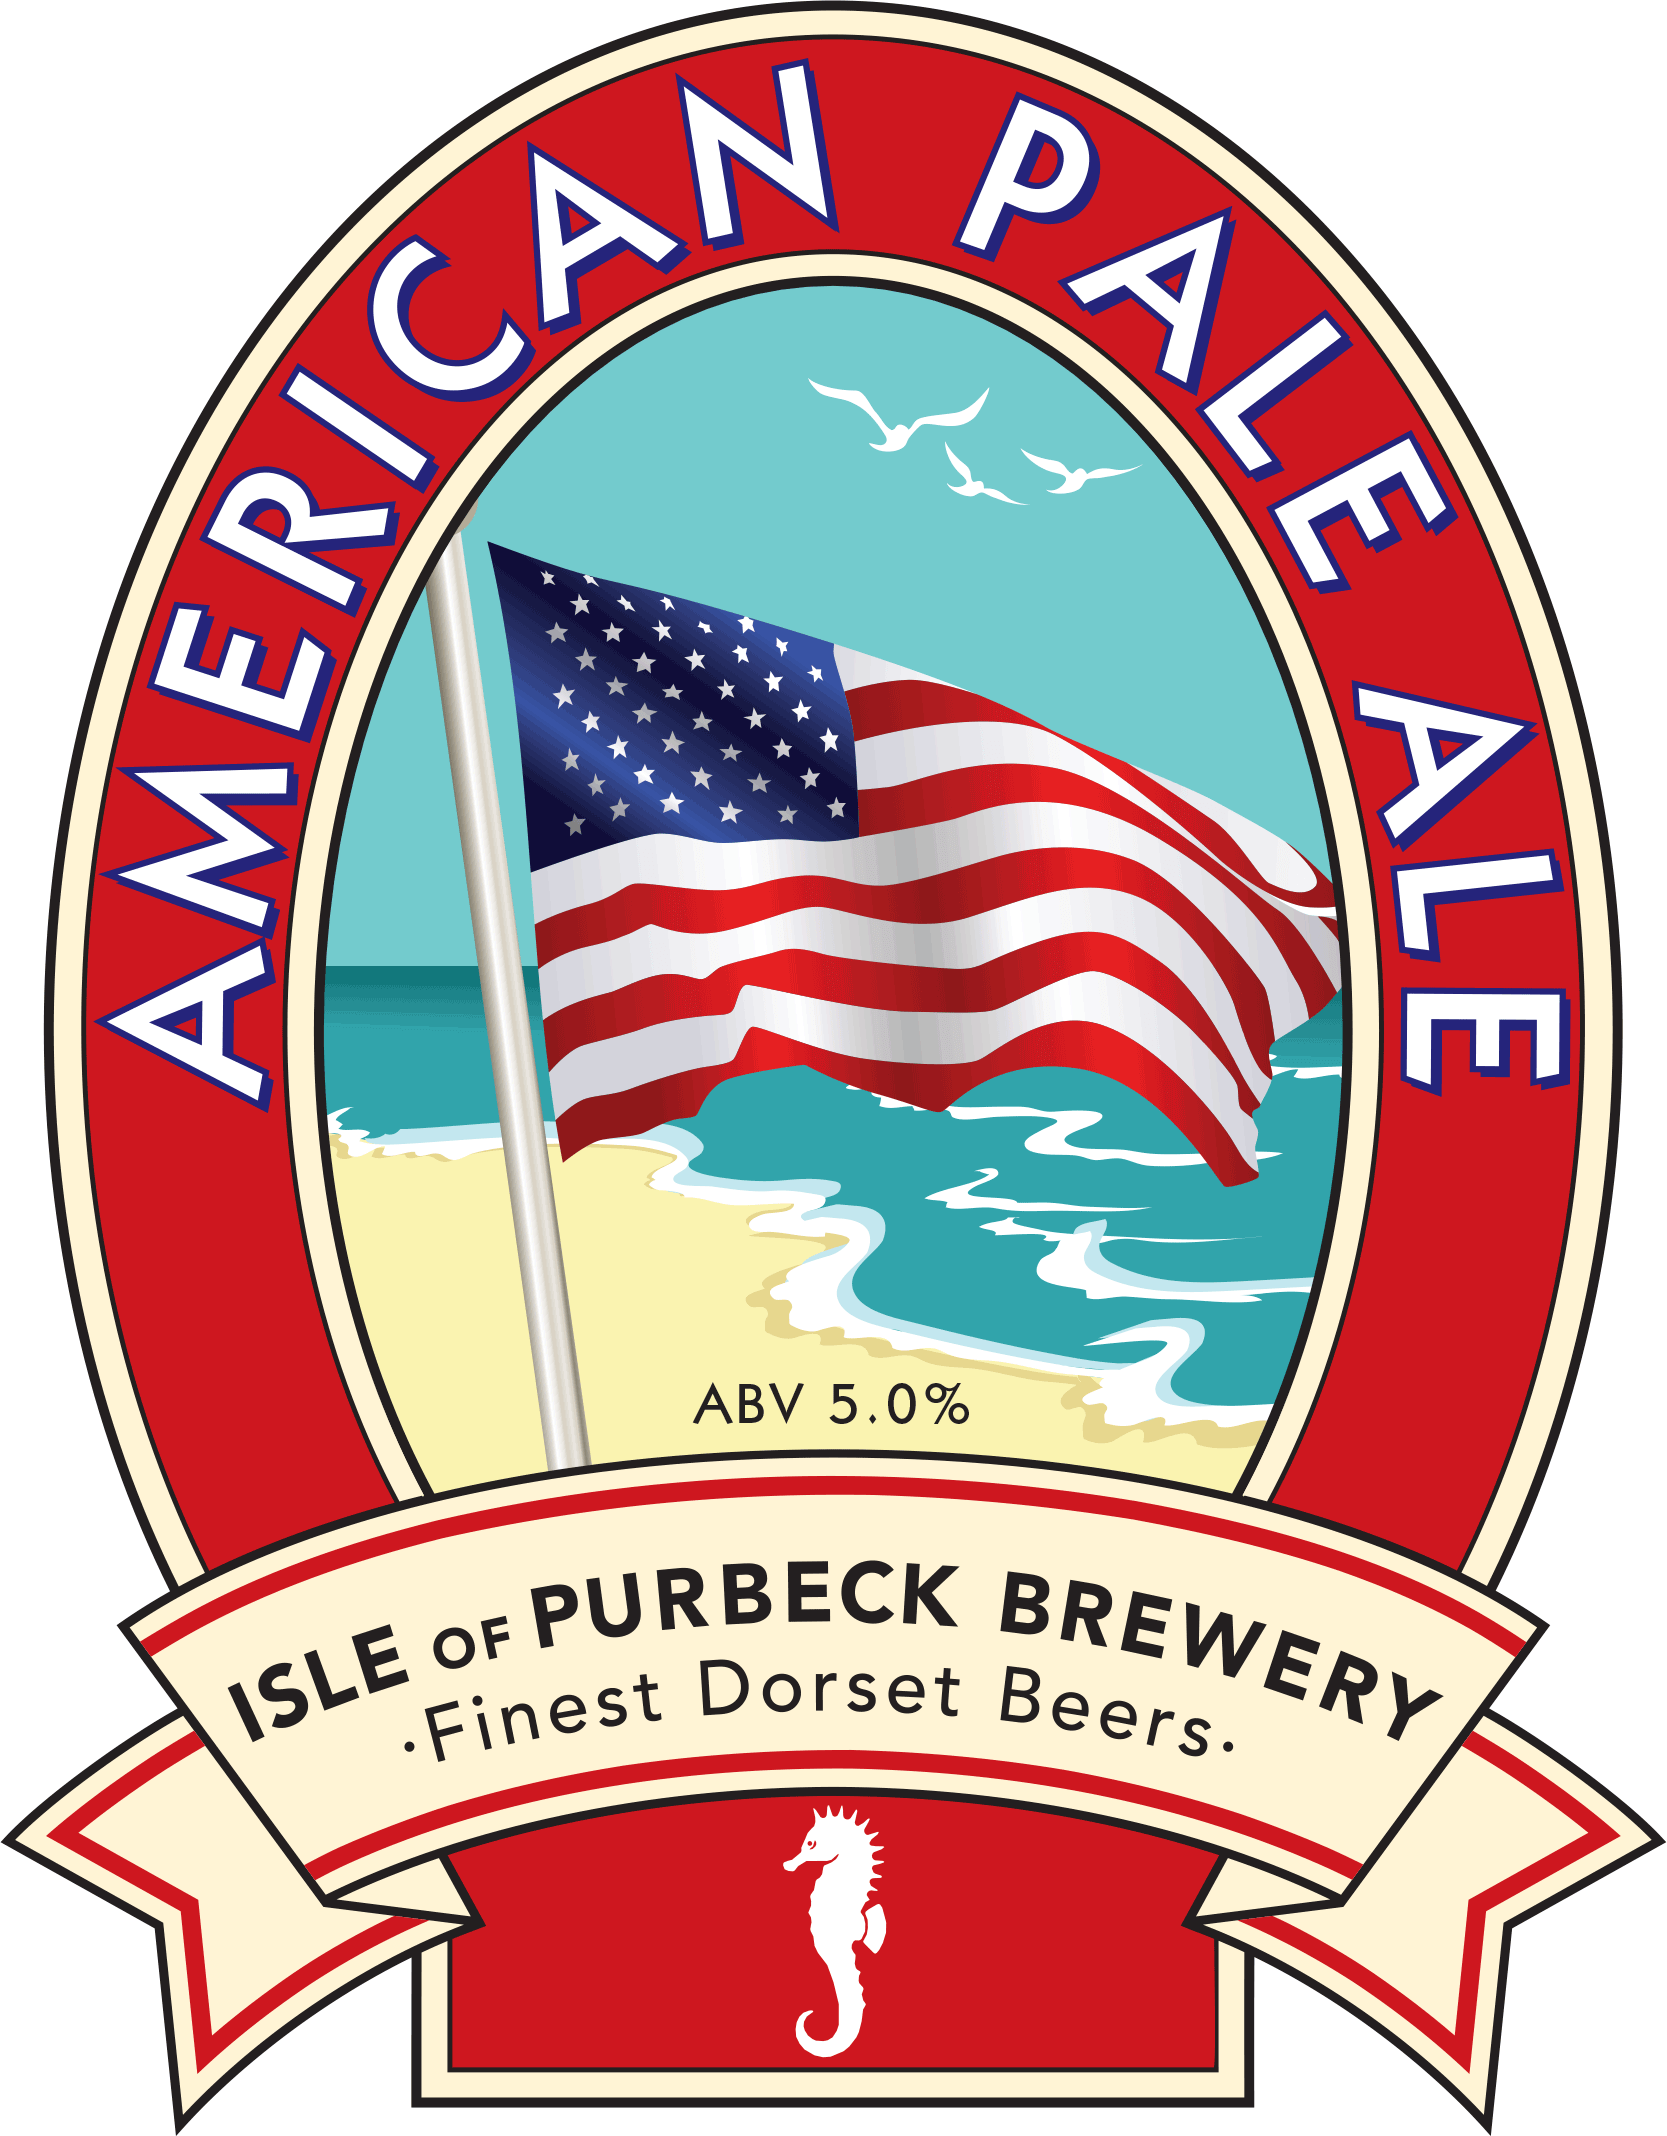 Isle of Purbeck Brewery American Pale Ale pumpclip PNG